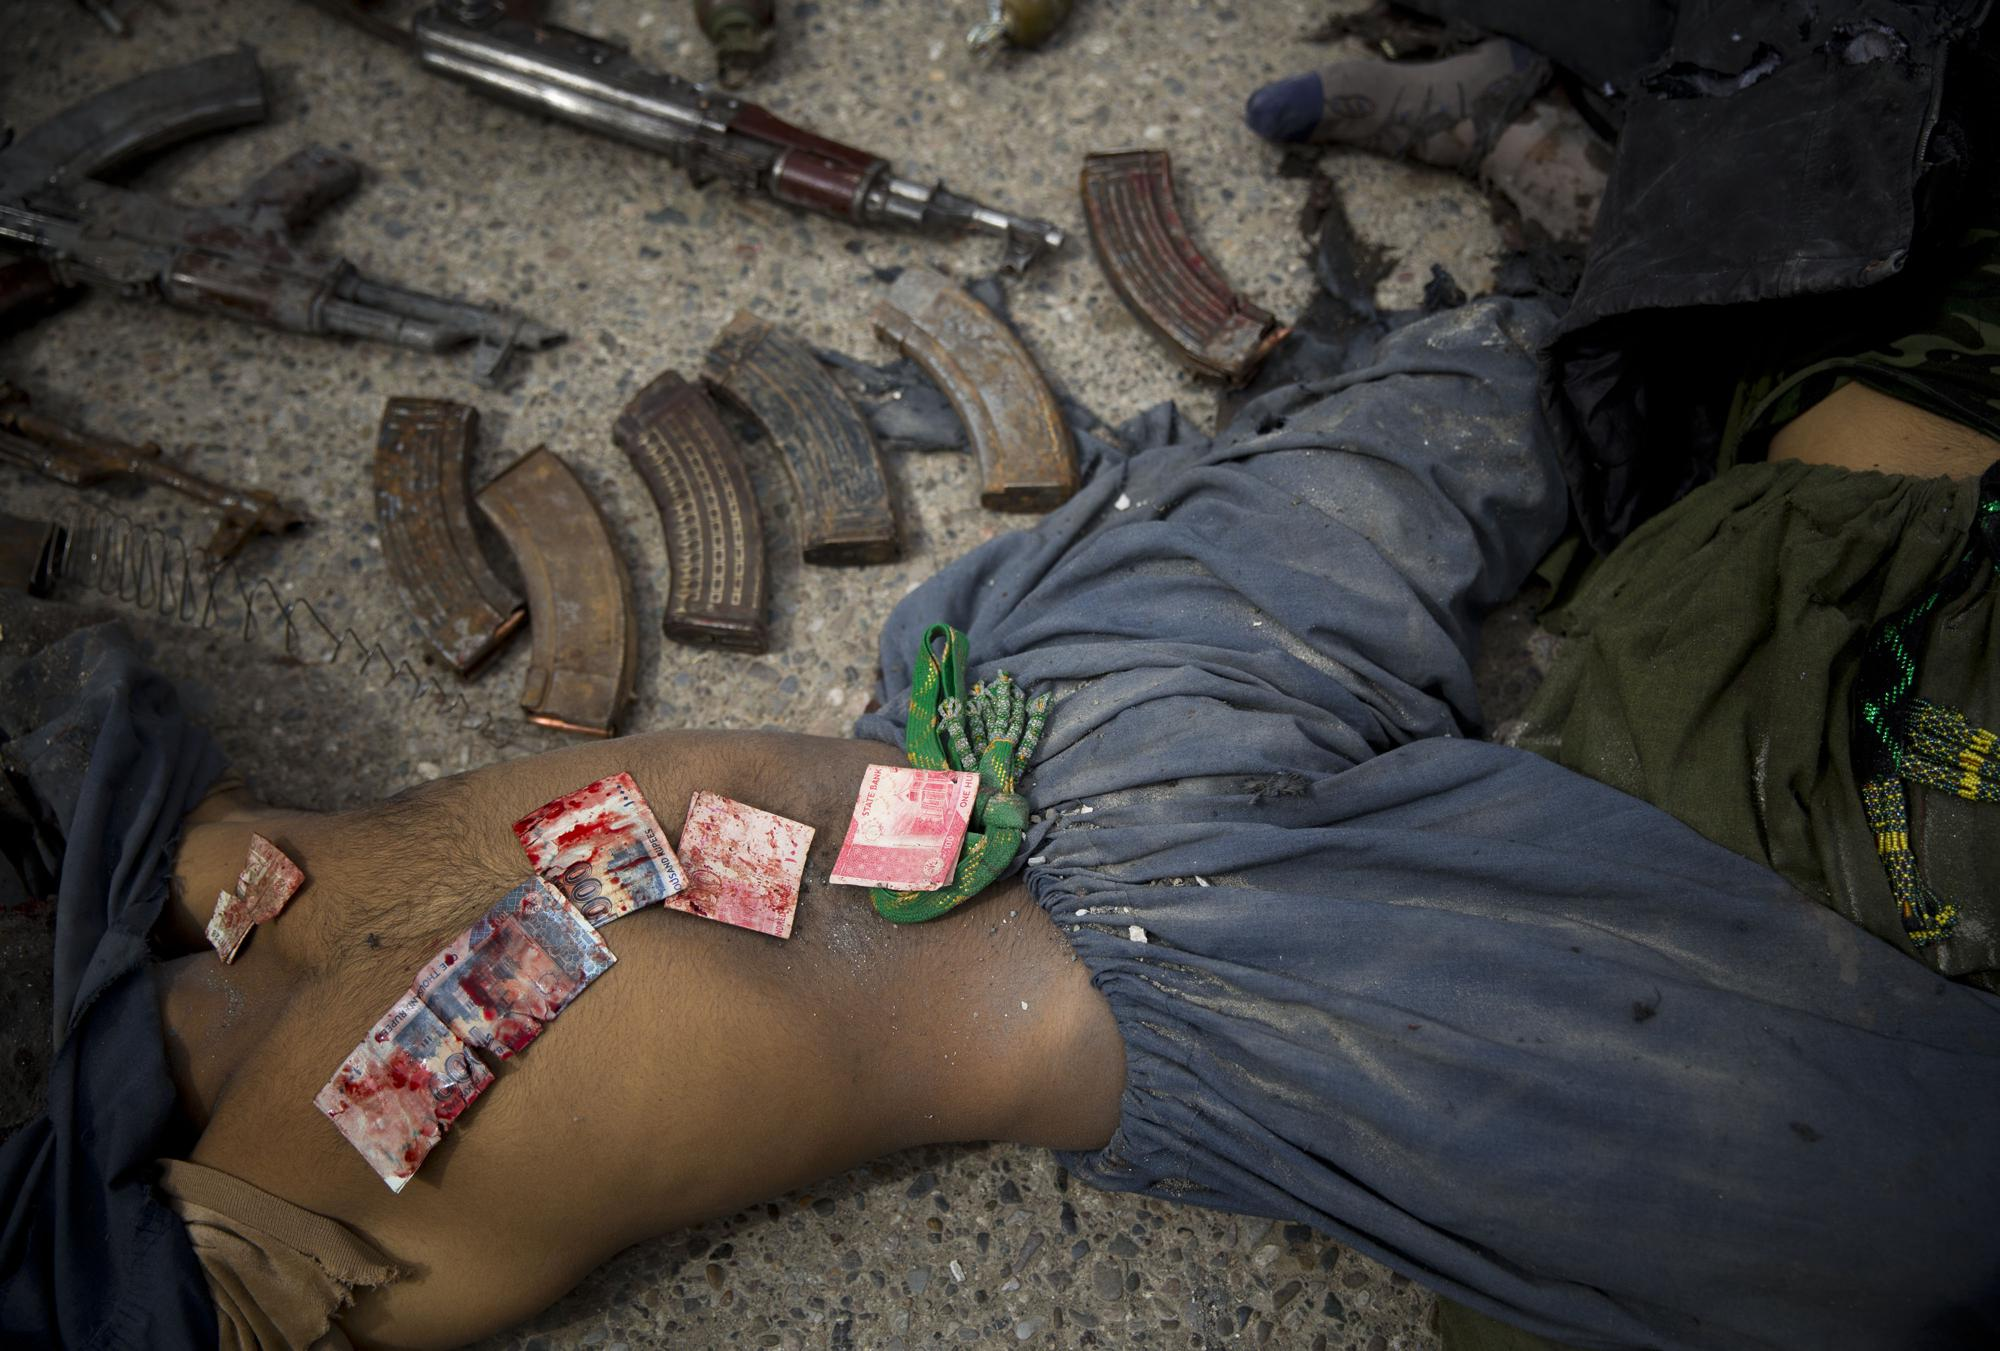 Pakistani bank notes covered in blood are displayed on the body of a dead suicide bomber after police found them in his pocket in the center of Kandahar, Afghanistan, Wednesday, March 12, 2014, after an attack on the former Afghan intelligence headquarters. Police officials said three insurgents who tried to storm the former headquarters of Afghanistan's intelligence service in southern Kandahar died in a gunbattle with security forces. (AP Photo/Anja Niedringhaus)